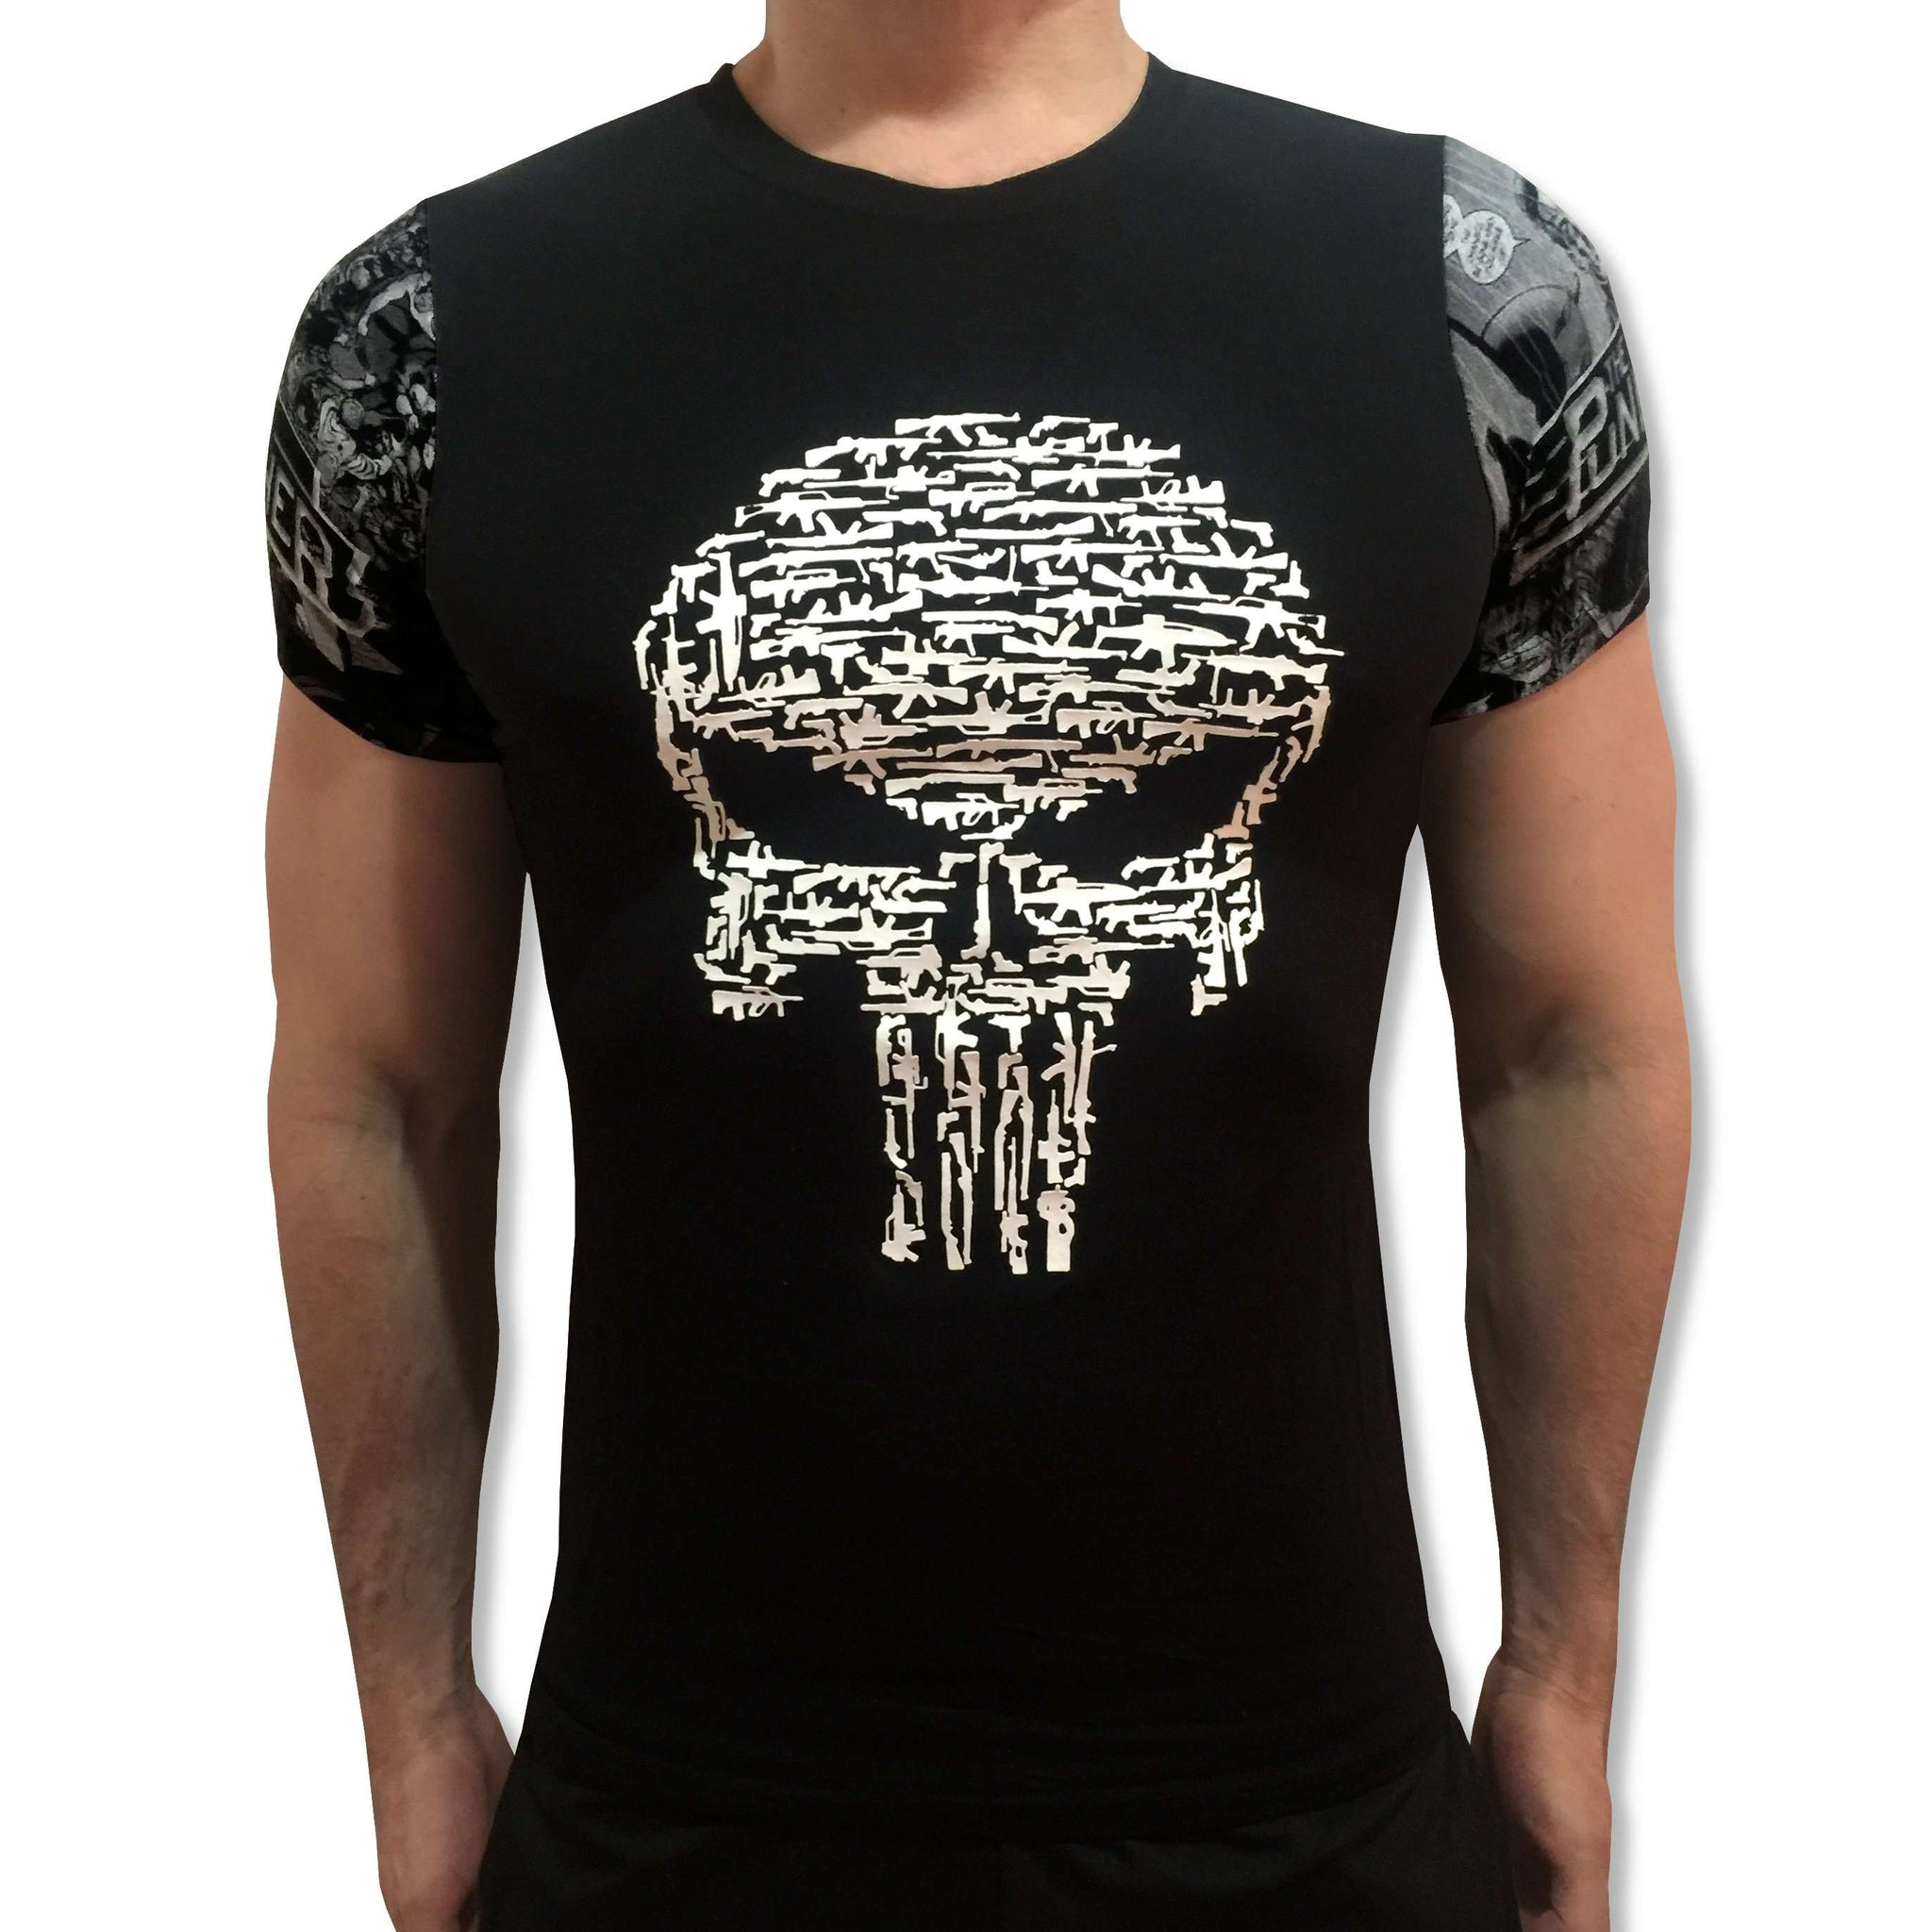 Punisher Embossed Tee! tshirt shirt t-shirt tee - SugarCane1977